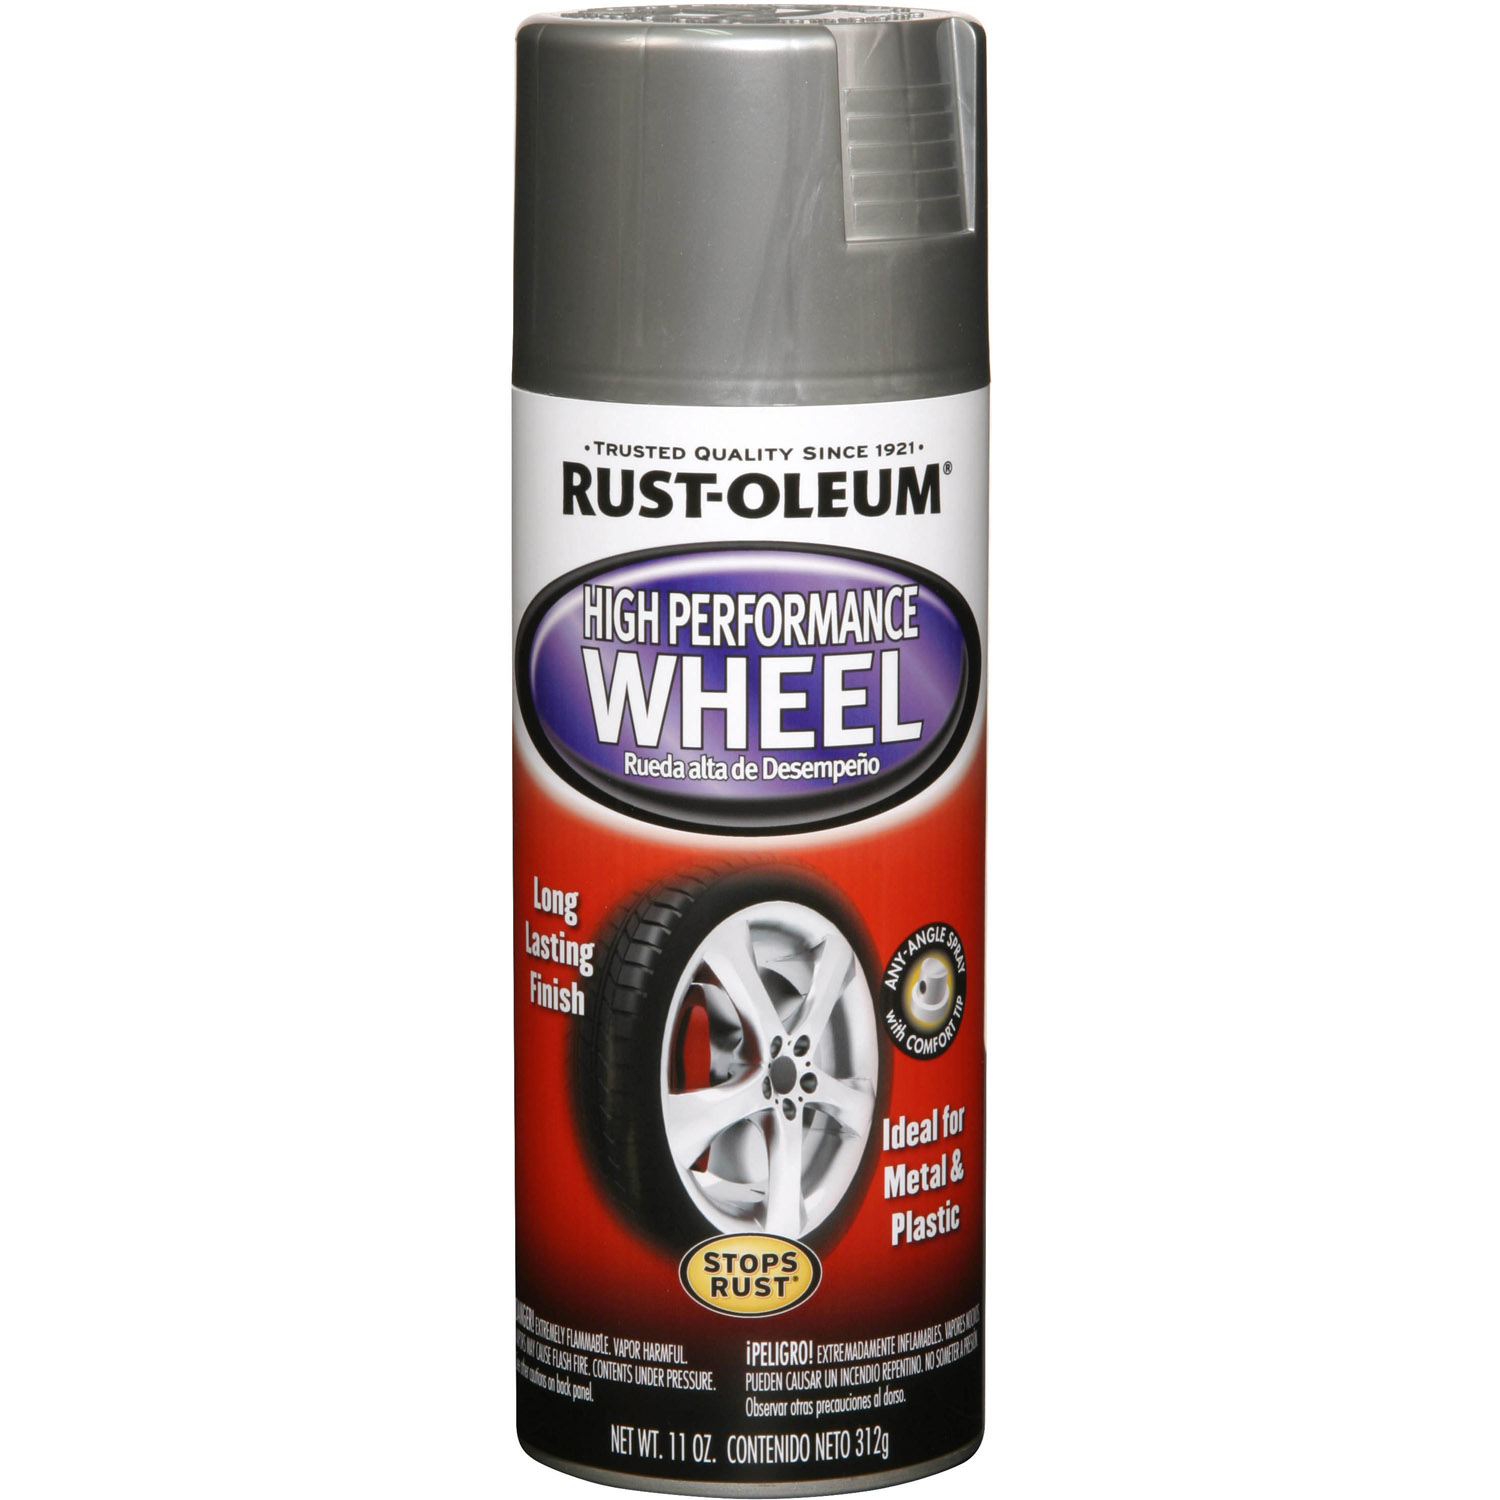 Rust-Oleum High Performance Wheel